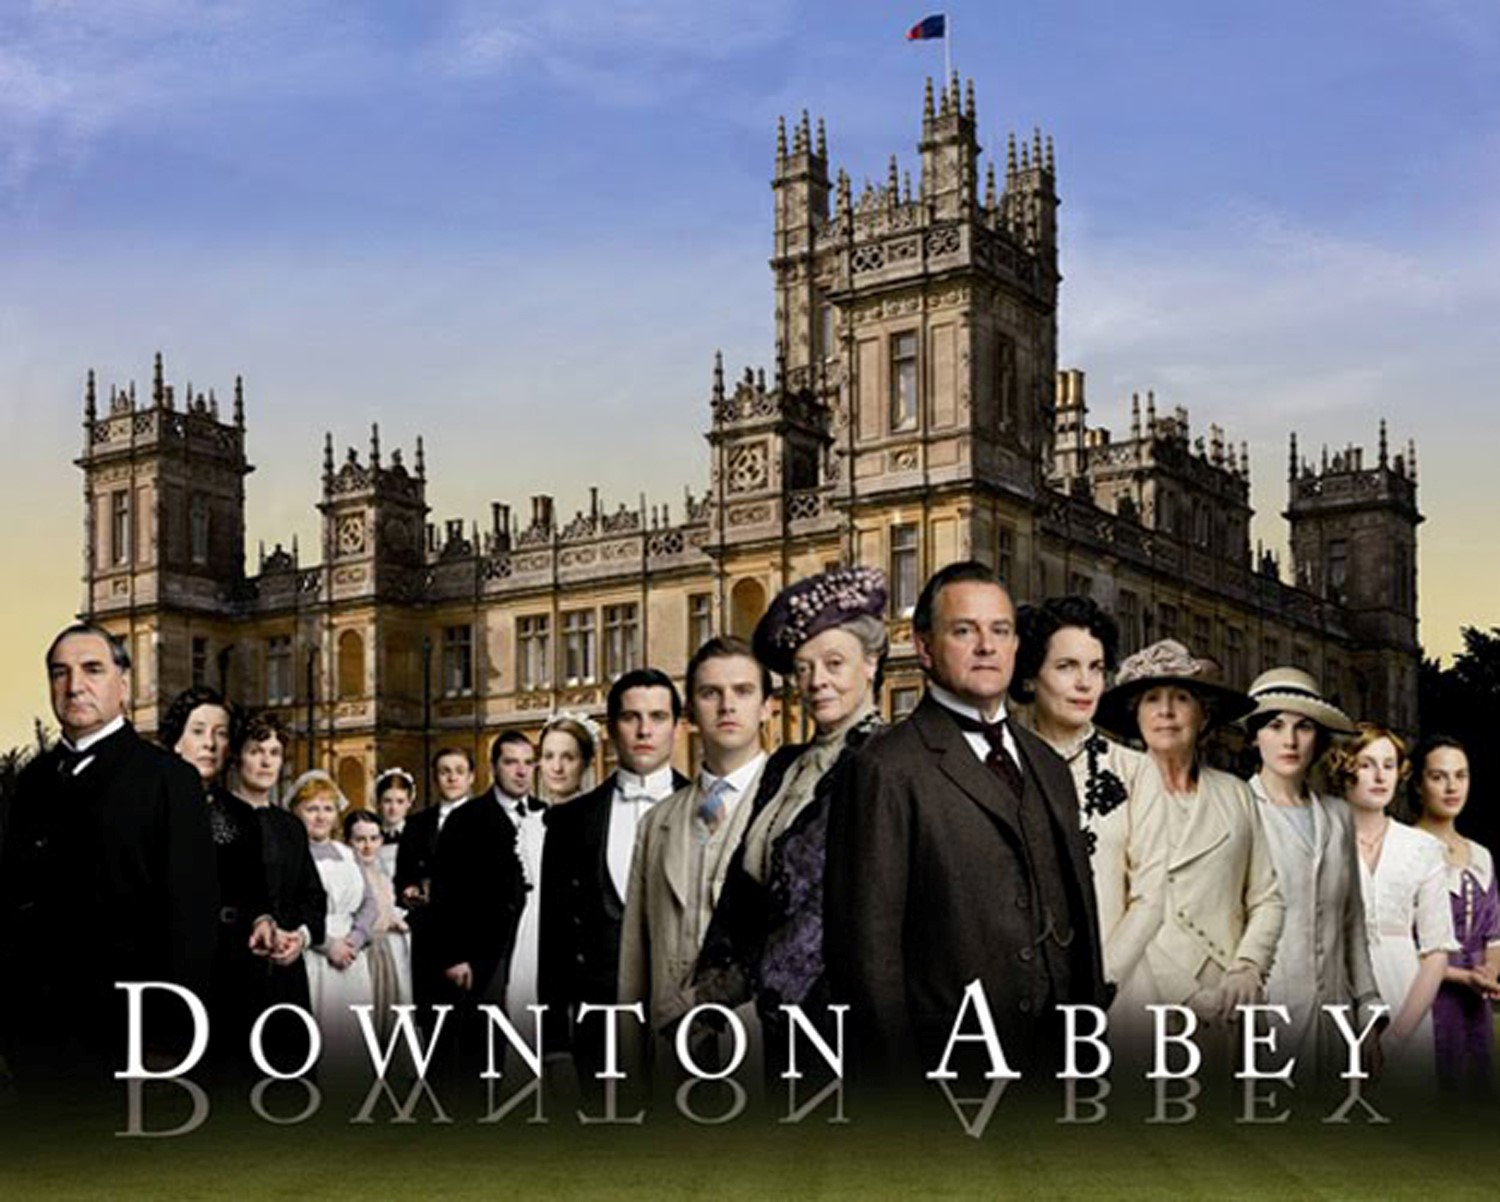 Streaming Downton Abbey: When Will the Law Catch Up to Global Television?